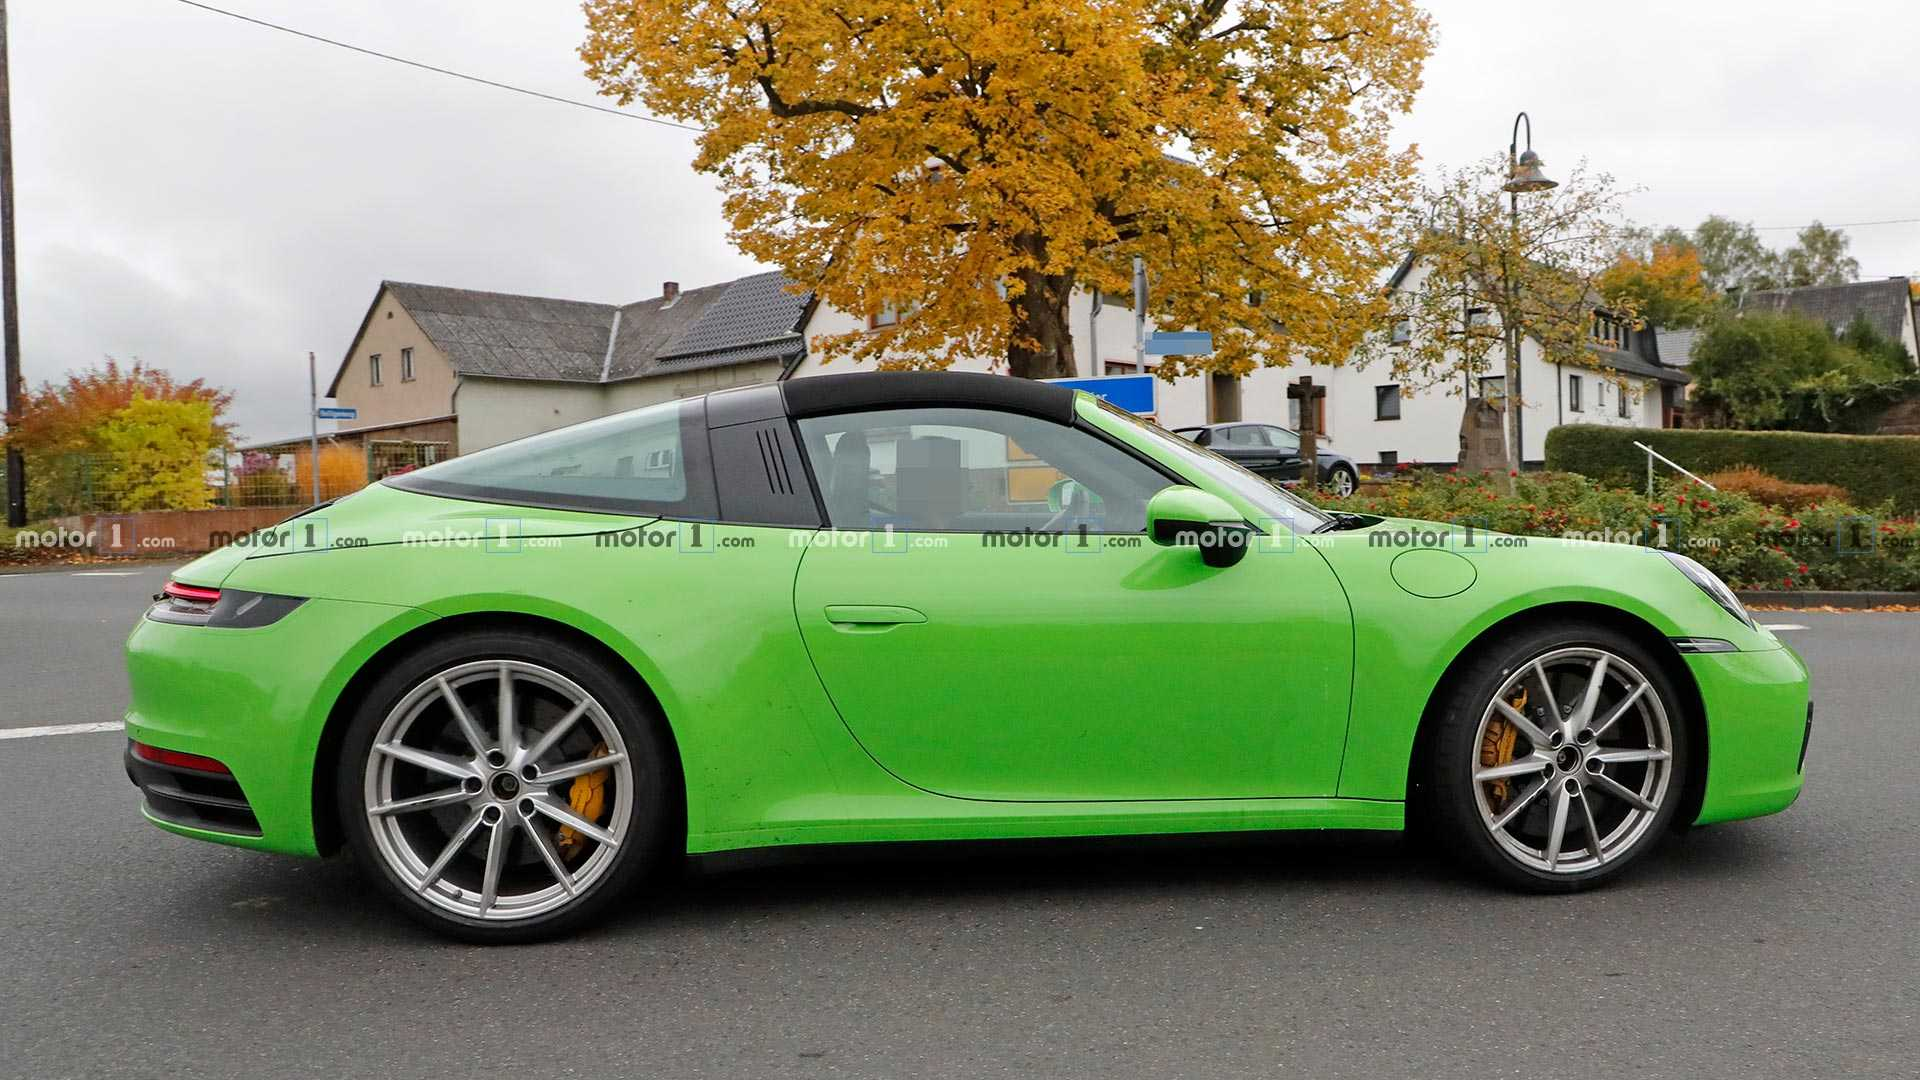 Porsche 911 Targa Spied On Gorgeous Fall Roads